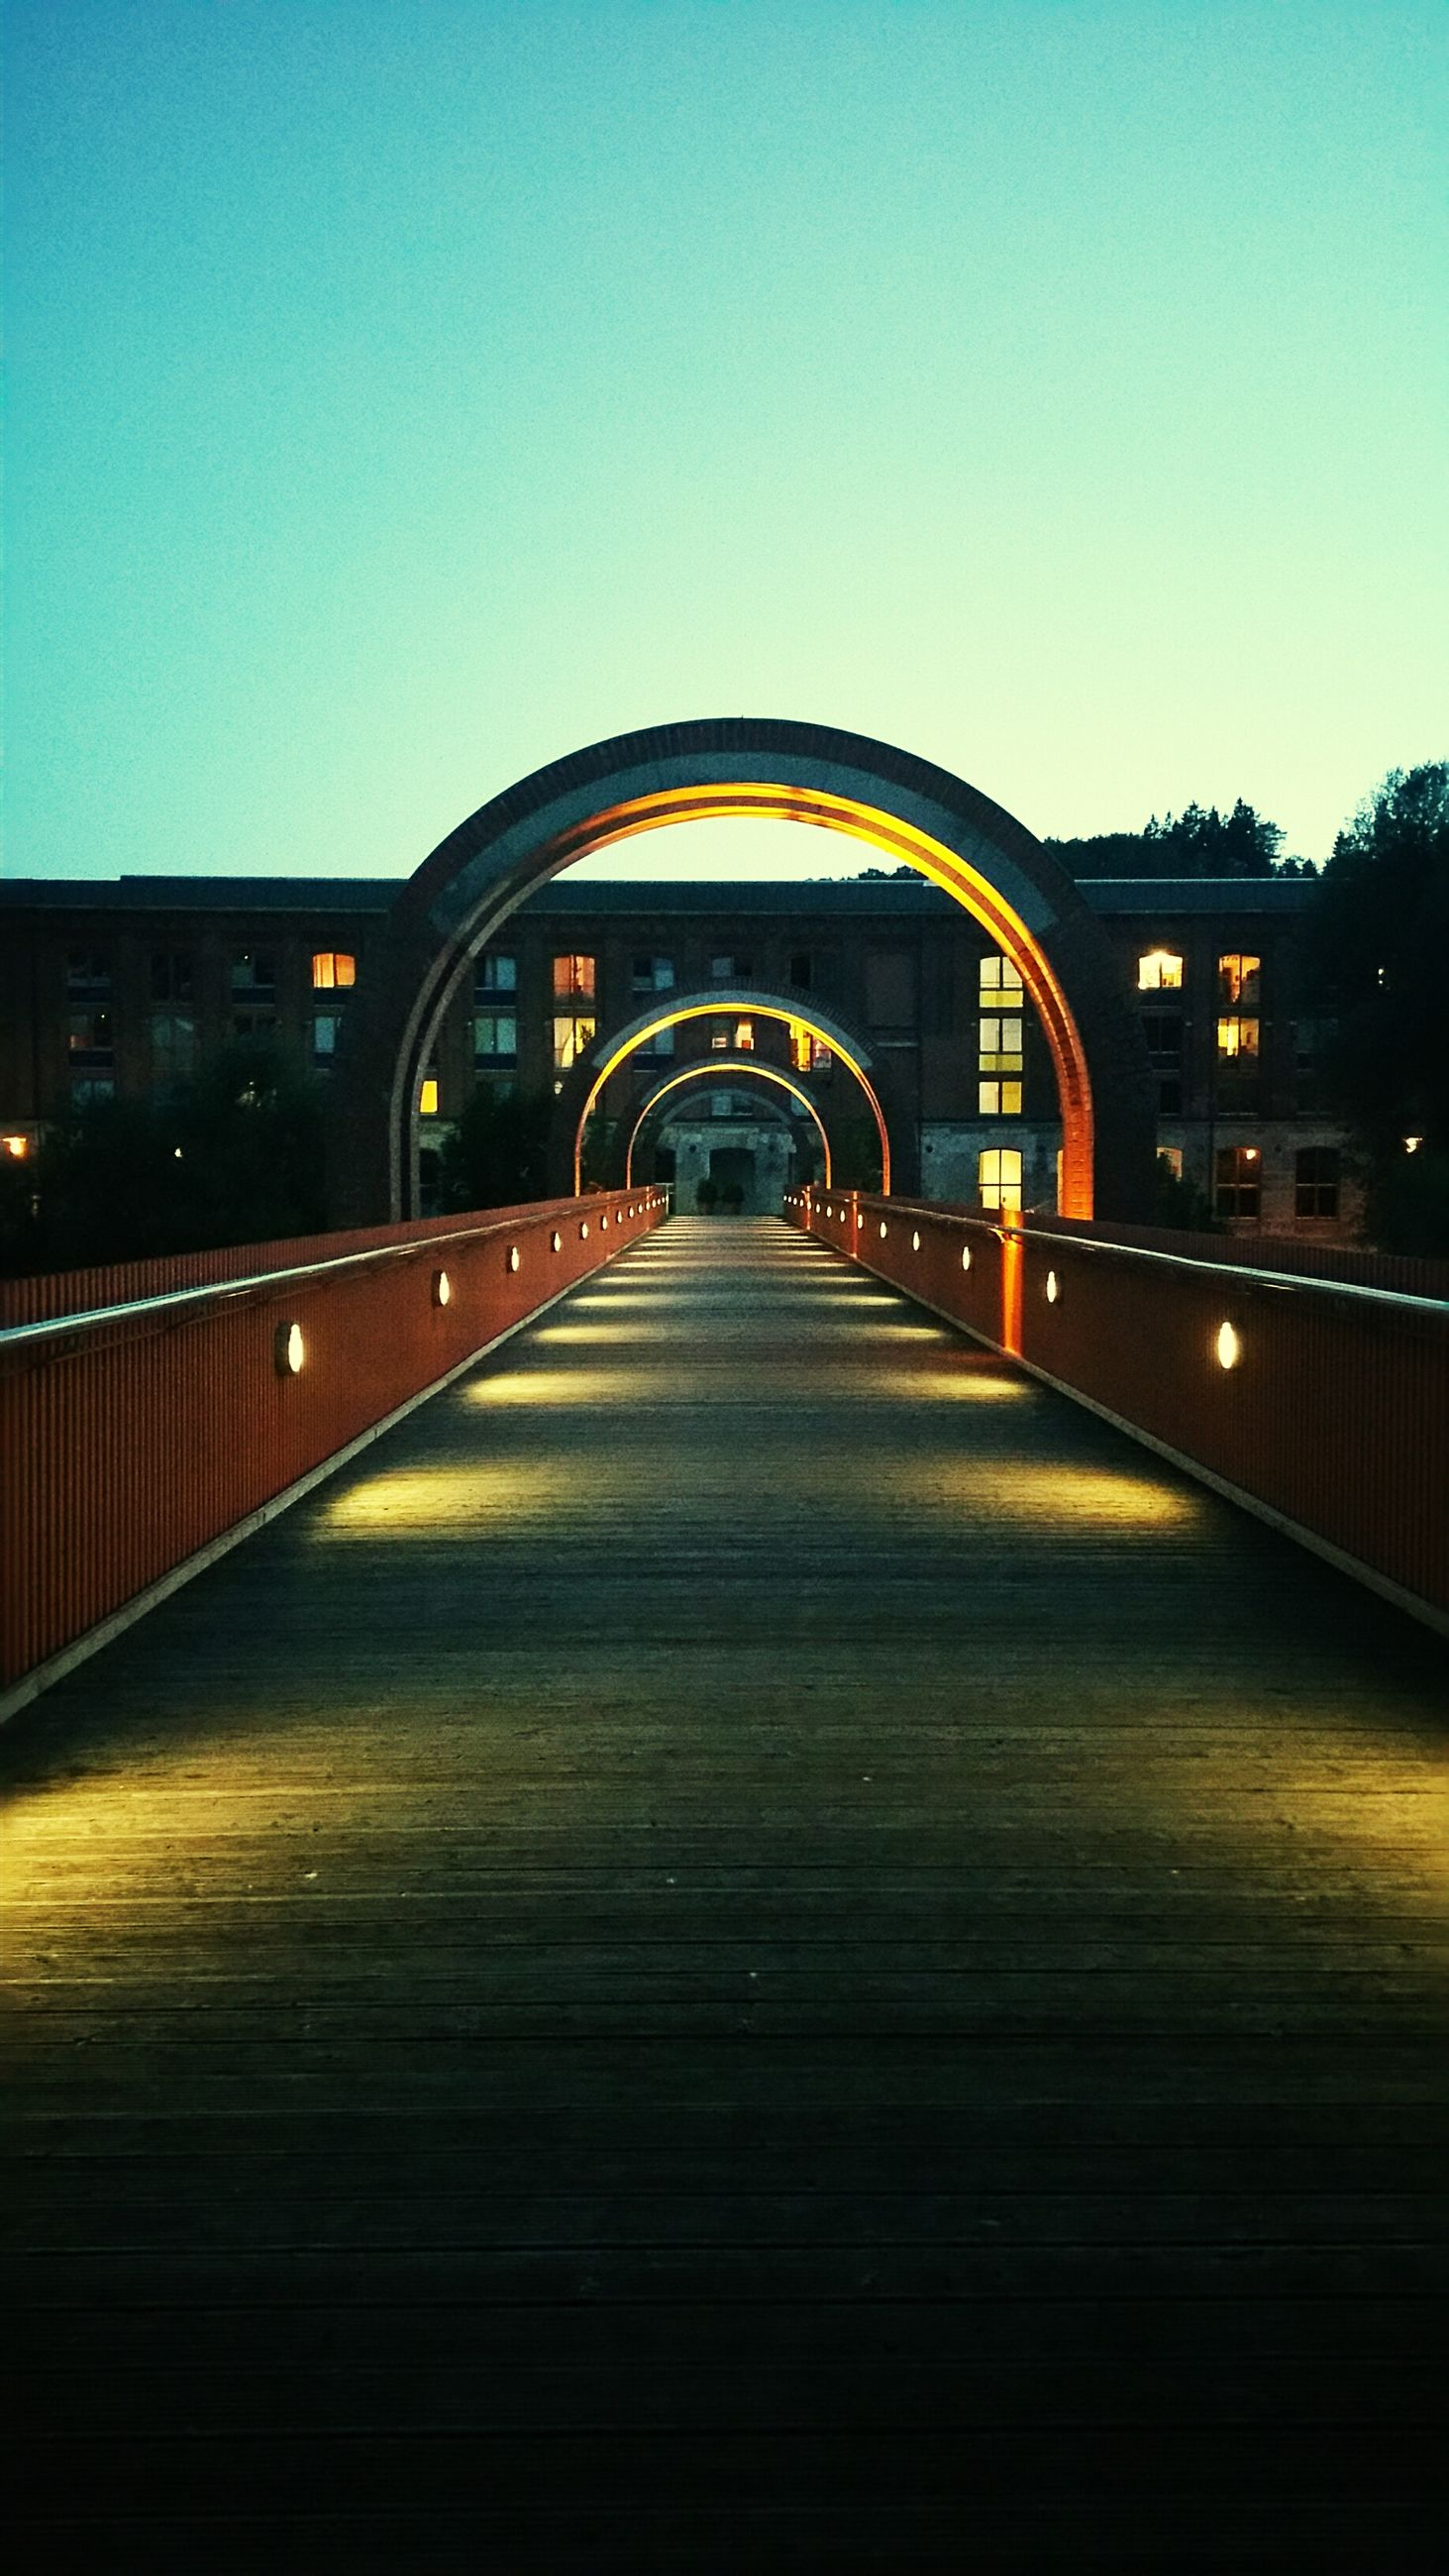 clear sky, illuminated, the way forward, built structure, night, architecture, copy space, diminishing perspective, arch, connection, bridge - man made structure, transportation, vanishing point, empty, road, lighting equipment, street light, long, bridge, surface level